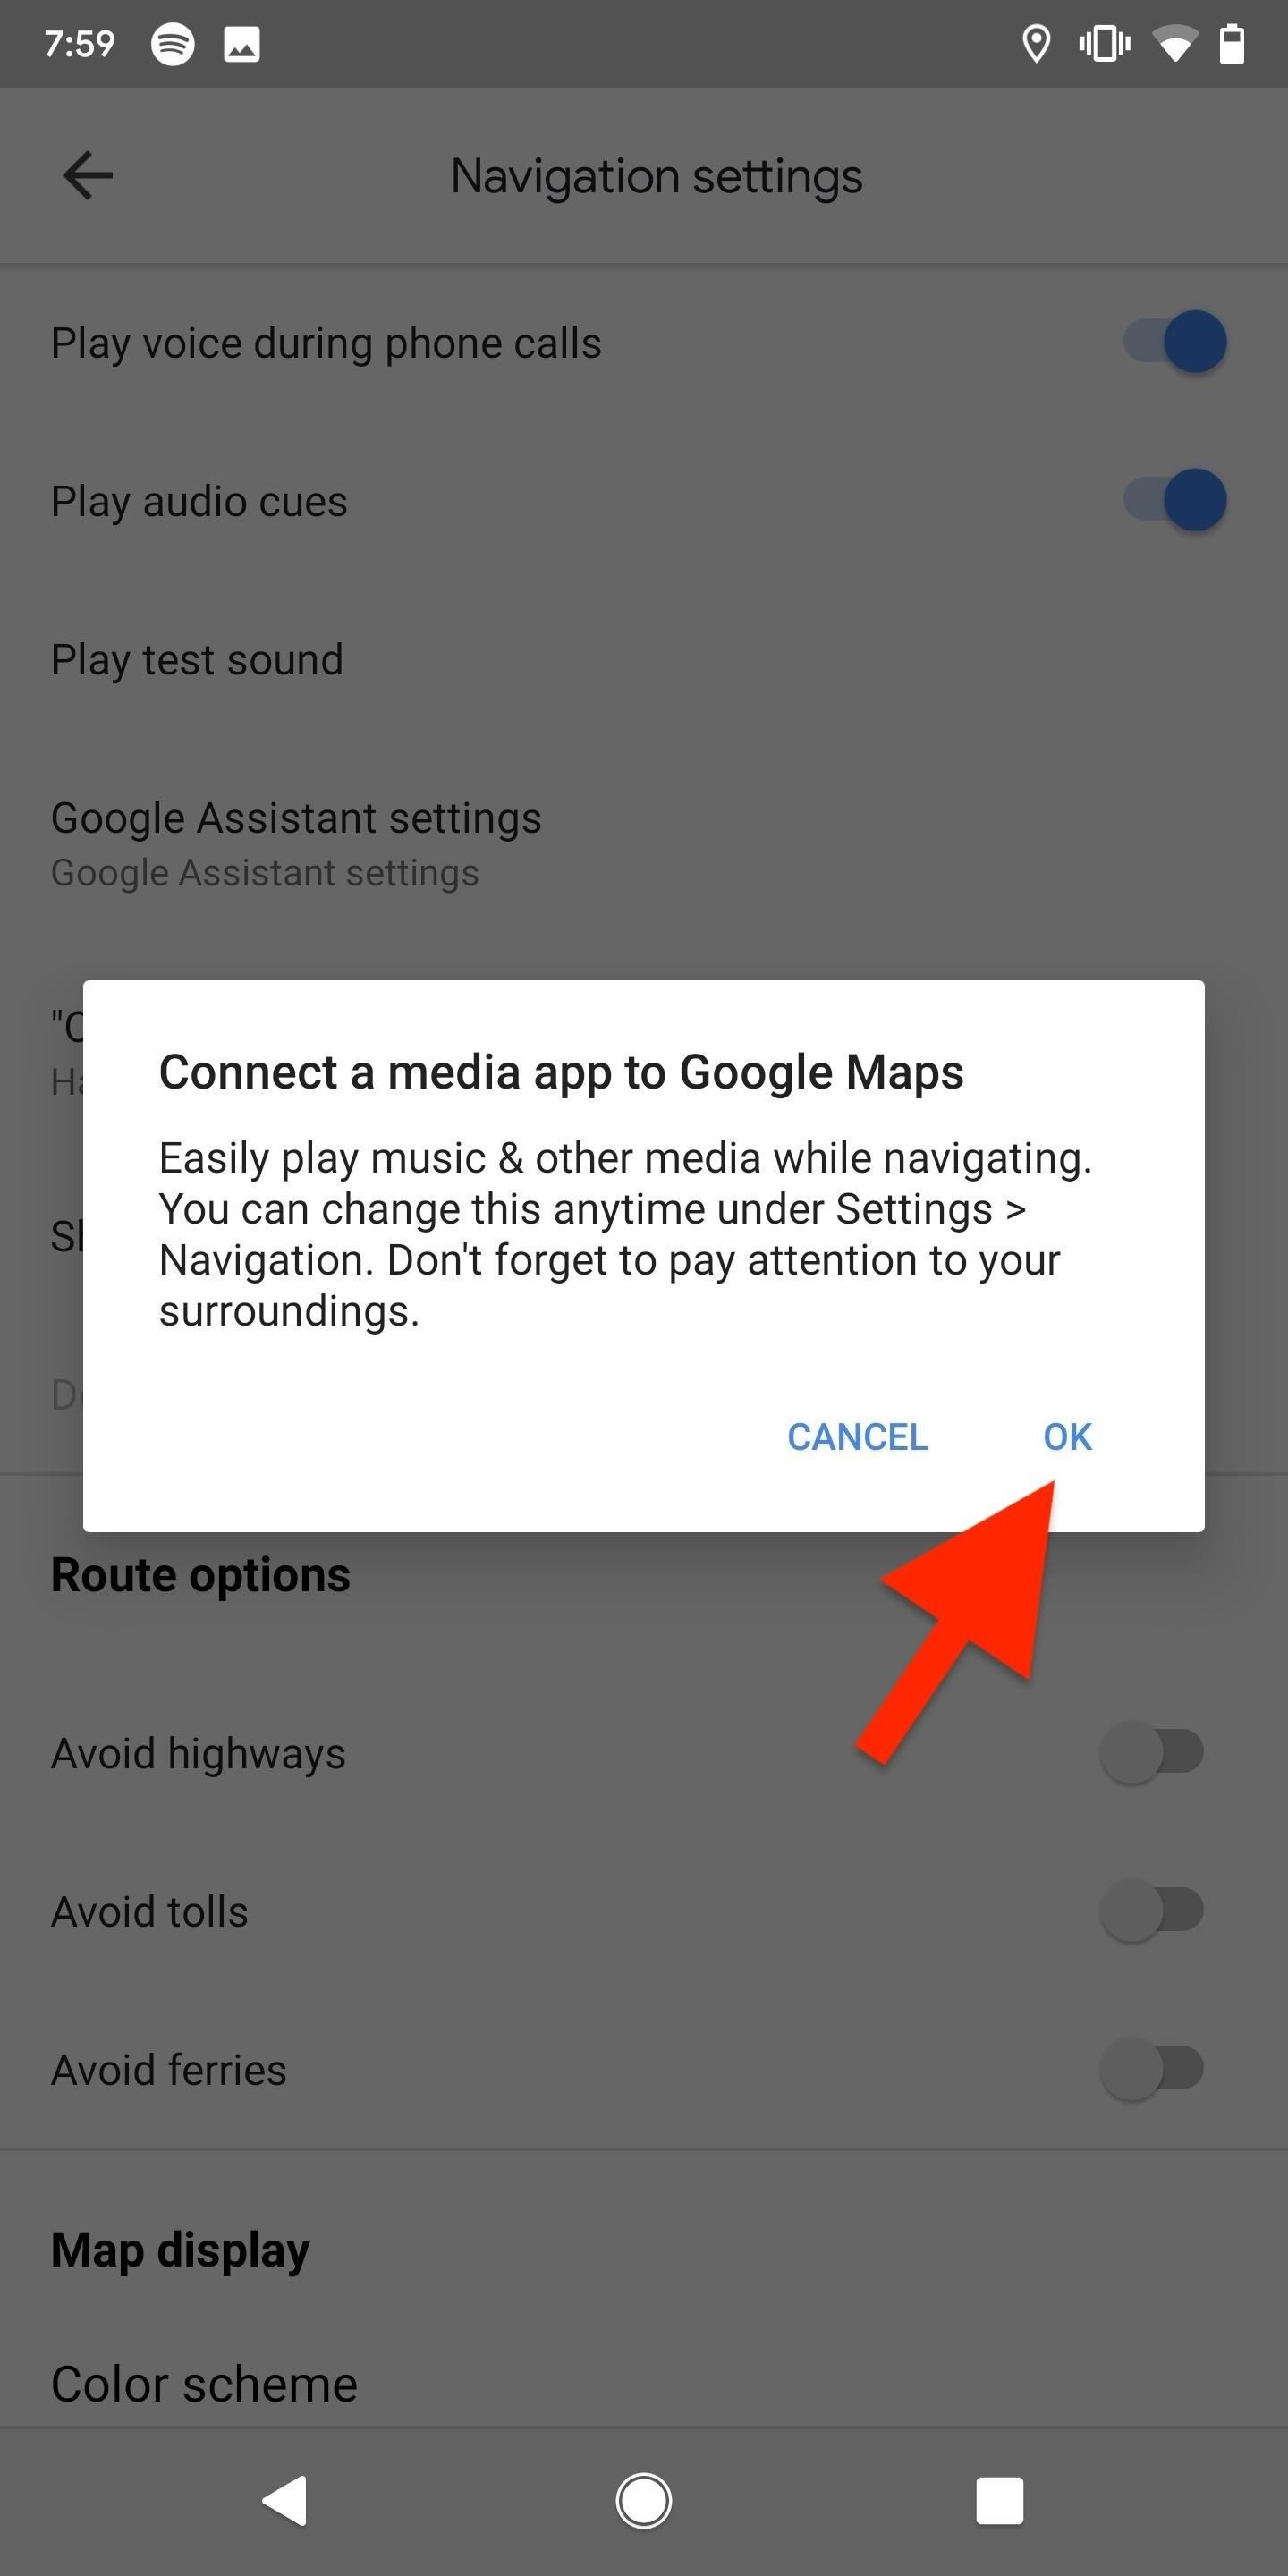 Add Playback Controls for Apple Music, Spotify & Other Music Services to Google Maps for Quick Access During Navigation